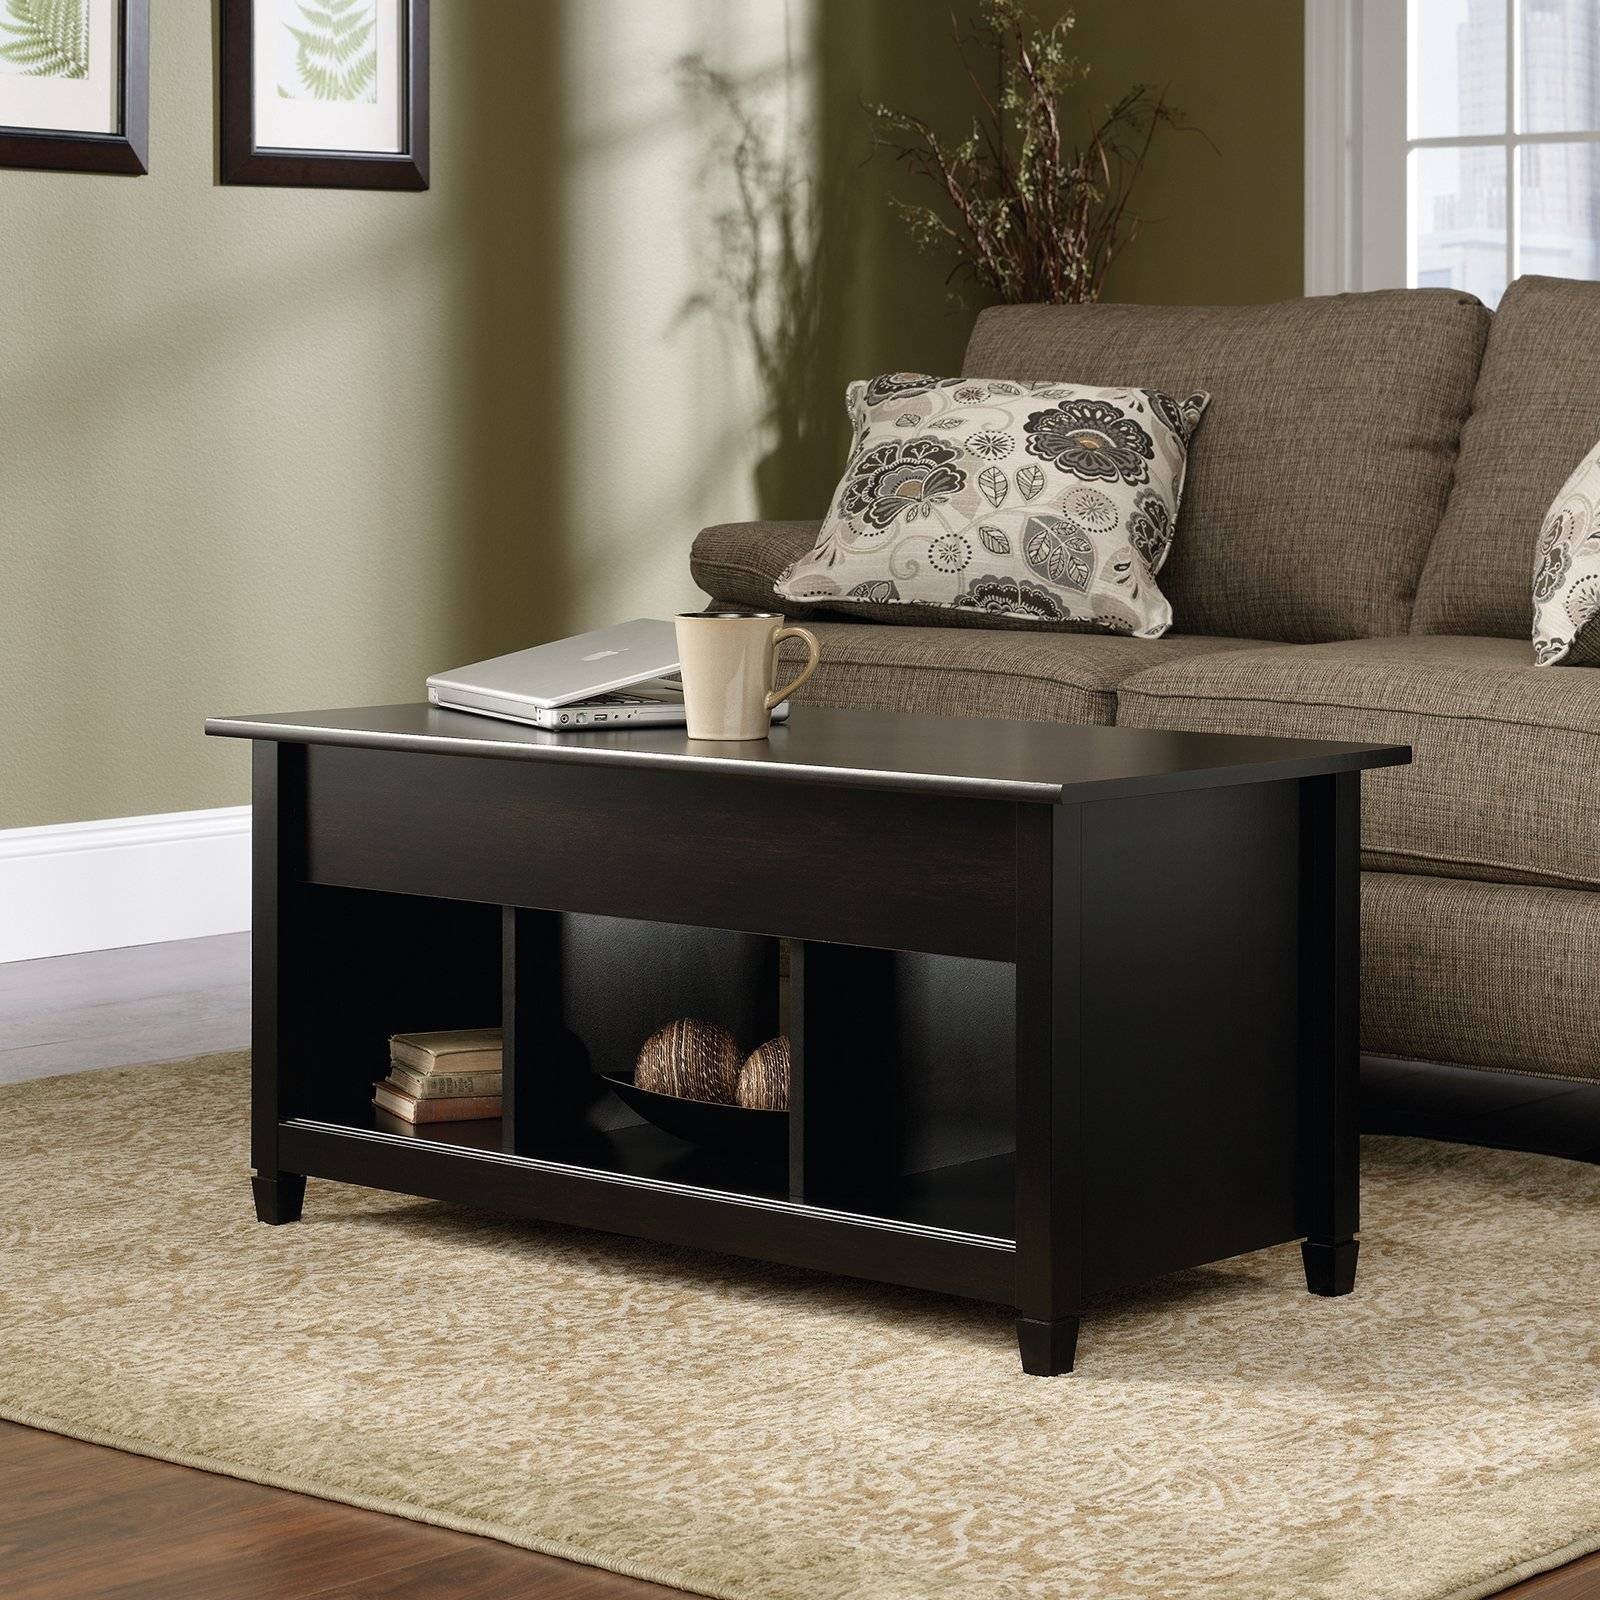 Turner Lift Top Coffee Table - Black | Hayneedle within Desk Coffee Tables (Image 29 of 30)